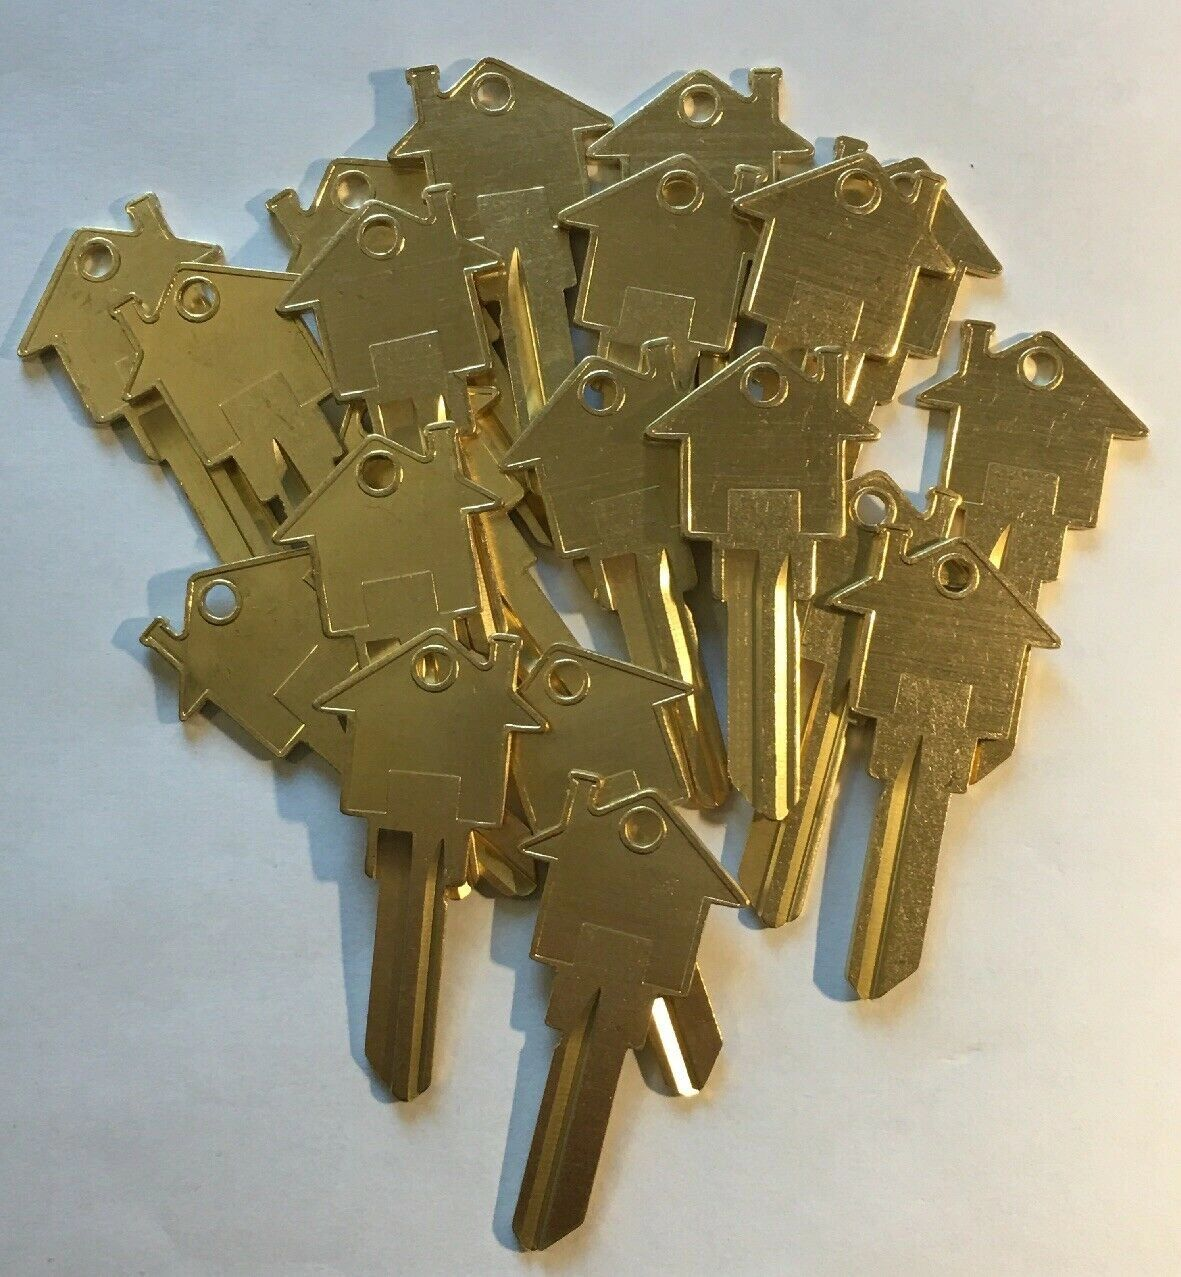 Real Estate Agent Marketing Ideas! House shaped keys for your clients! Great inexpensive advertising